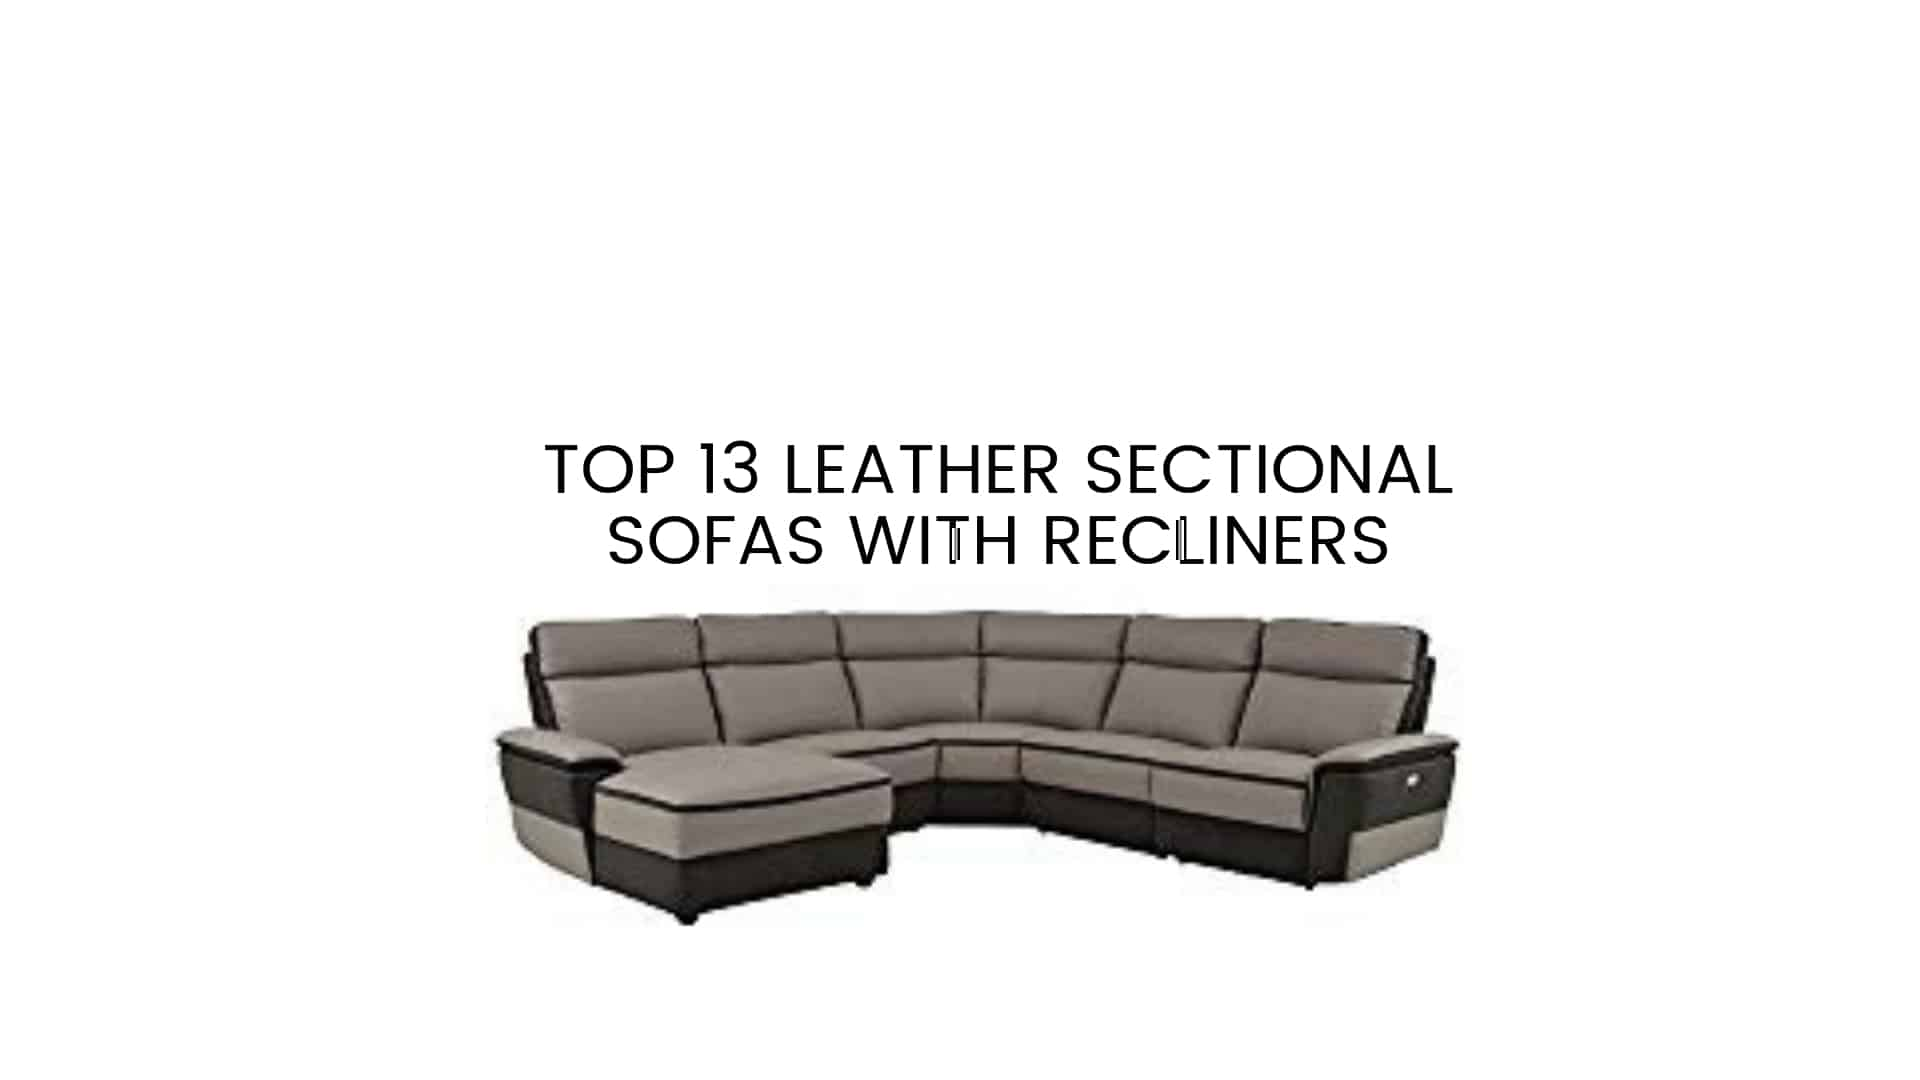 Top 13 Leather Sectional Sofas With Recliners 2019 Reviews